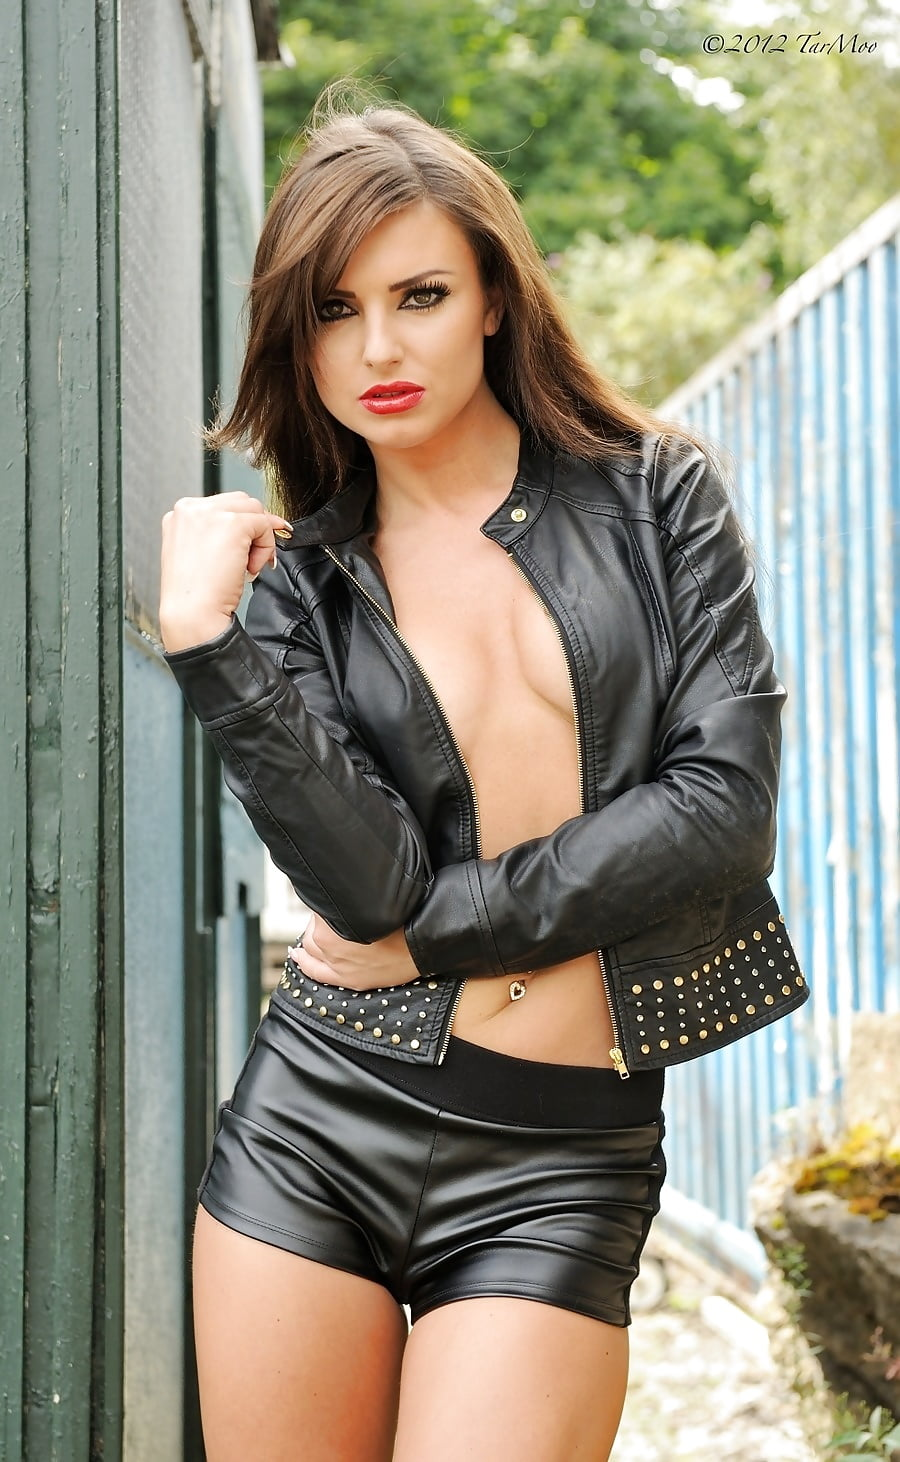 Sexy naked girls in leather jackets 2